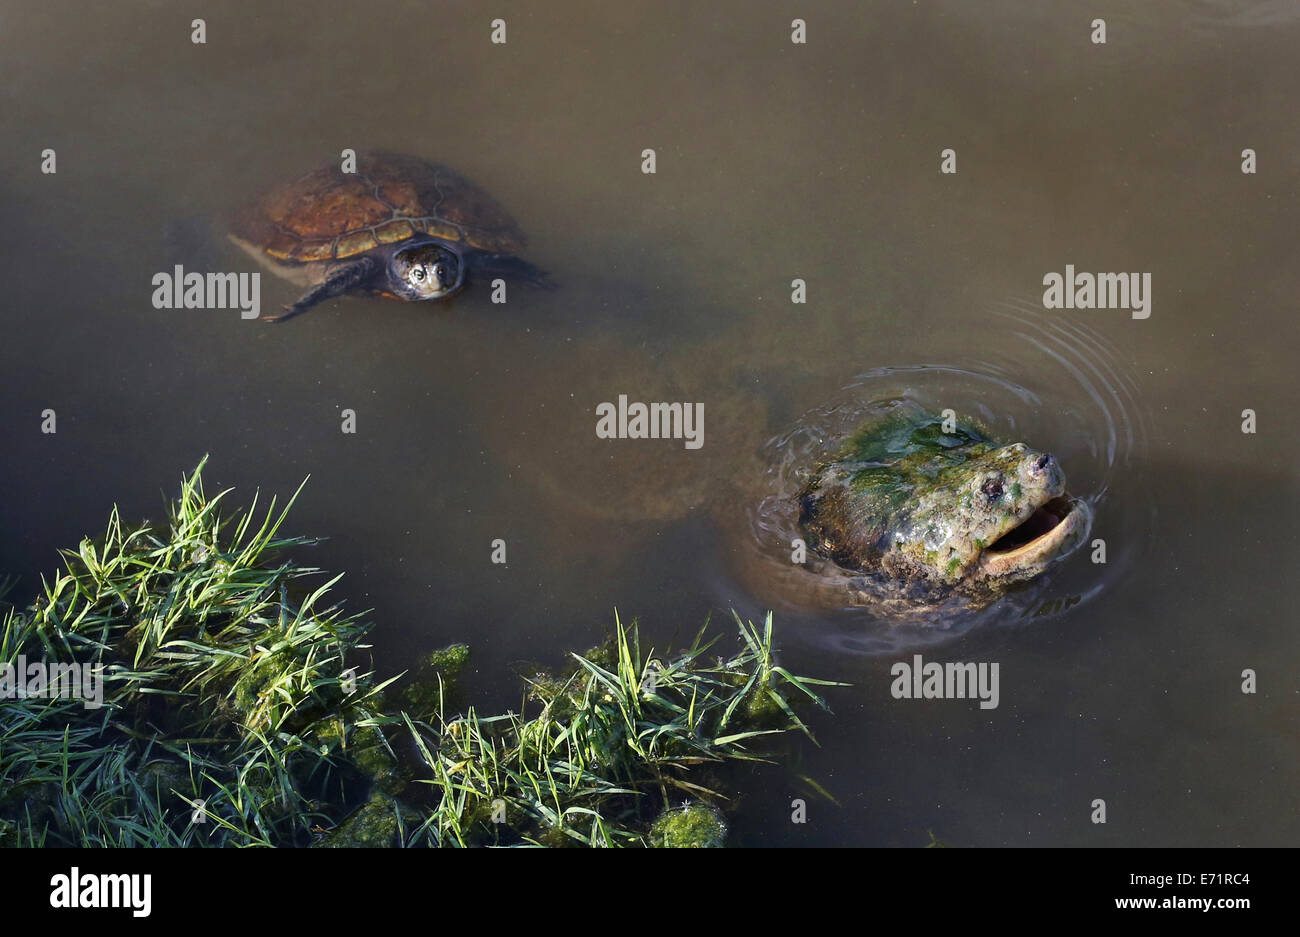 A large snapping turtle next to a smaller turtle in a pond. Stock Photo